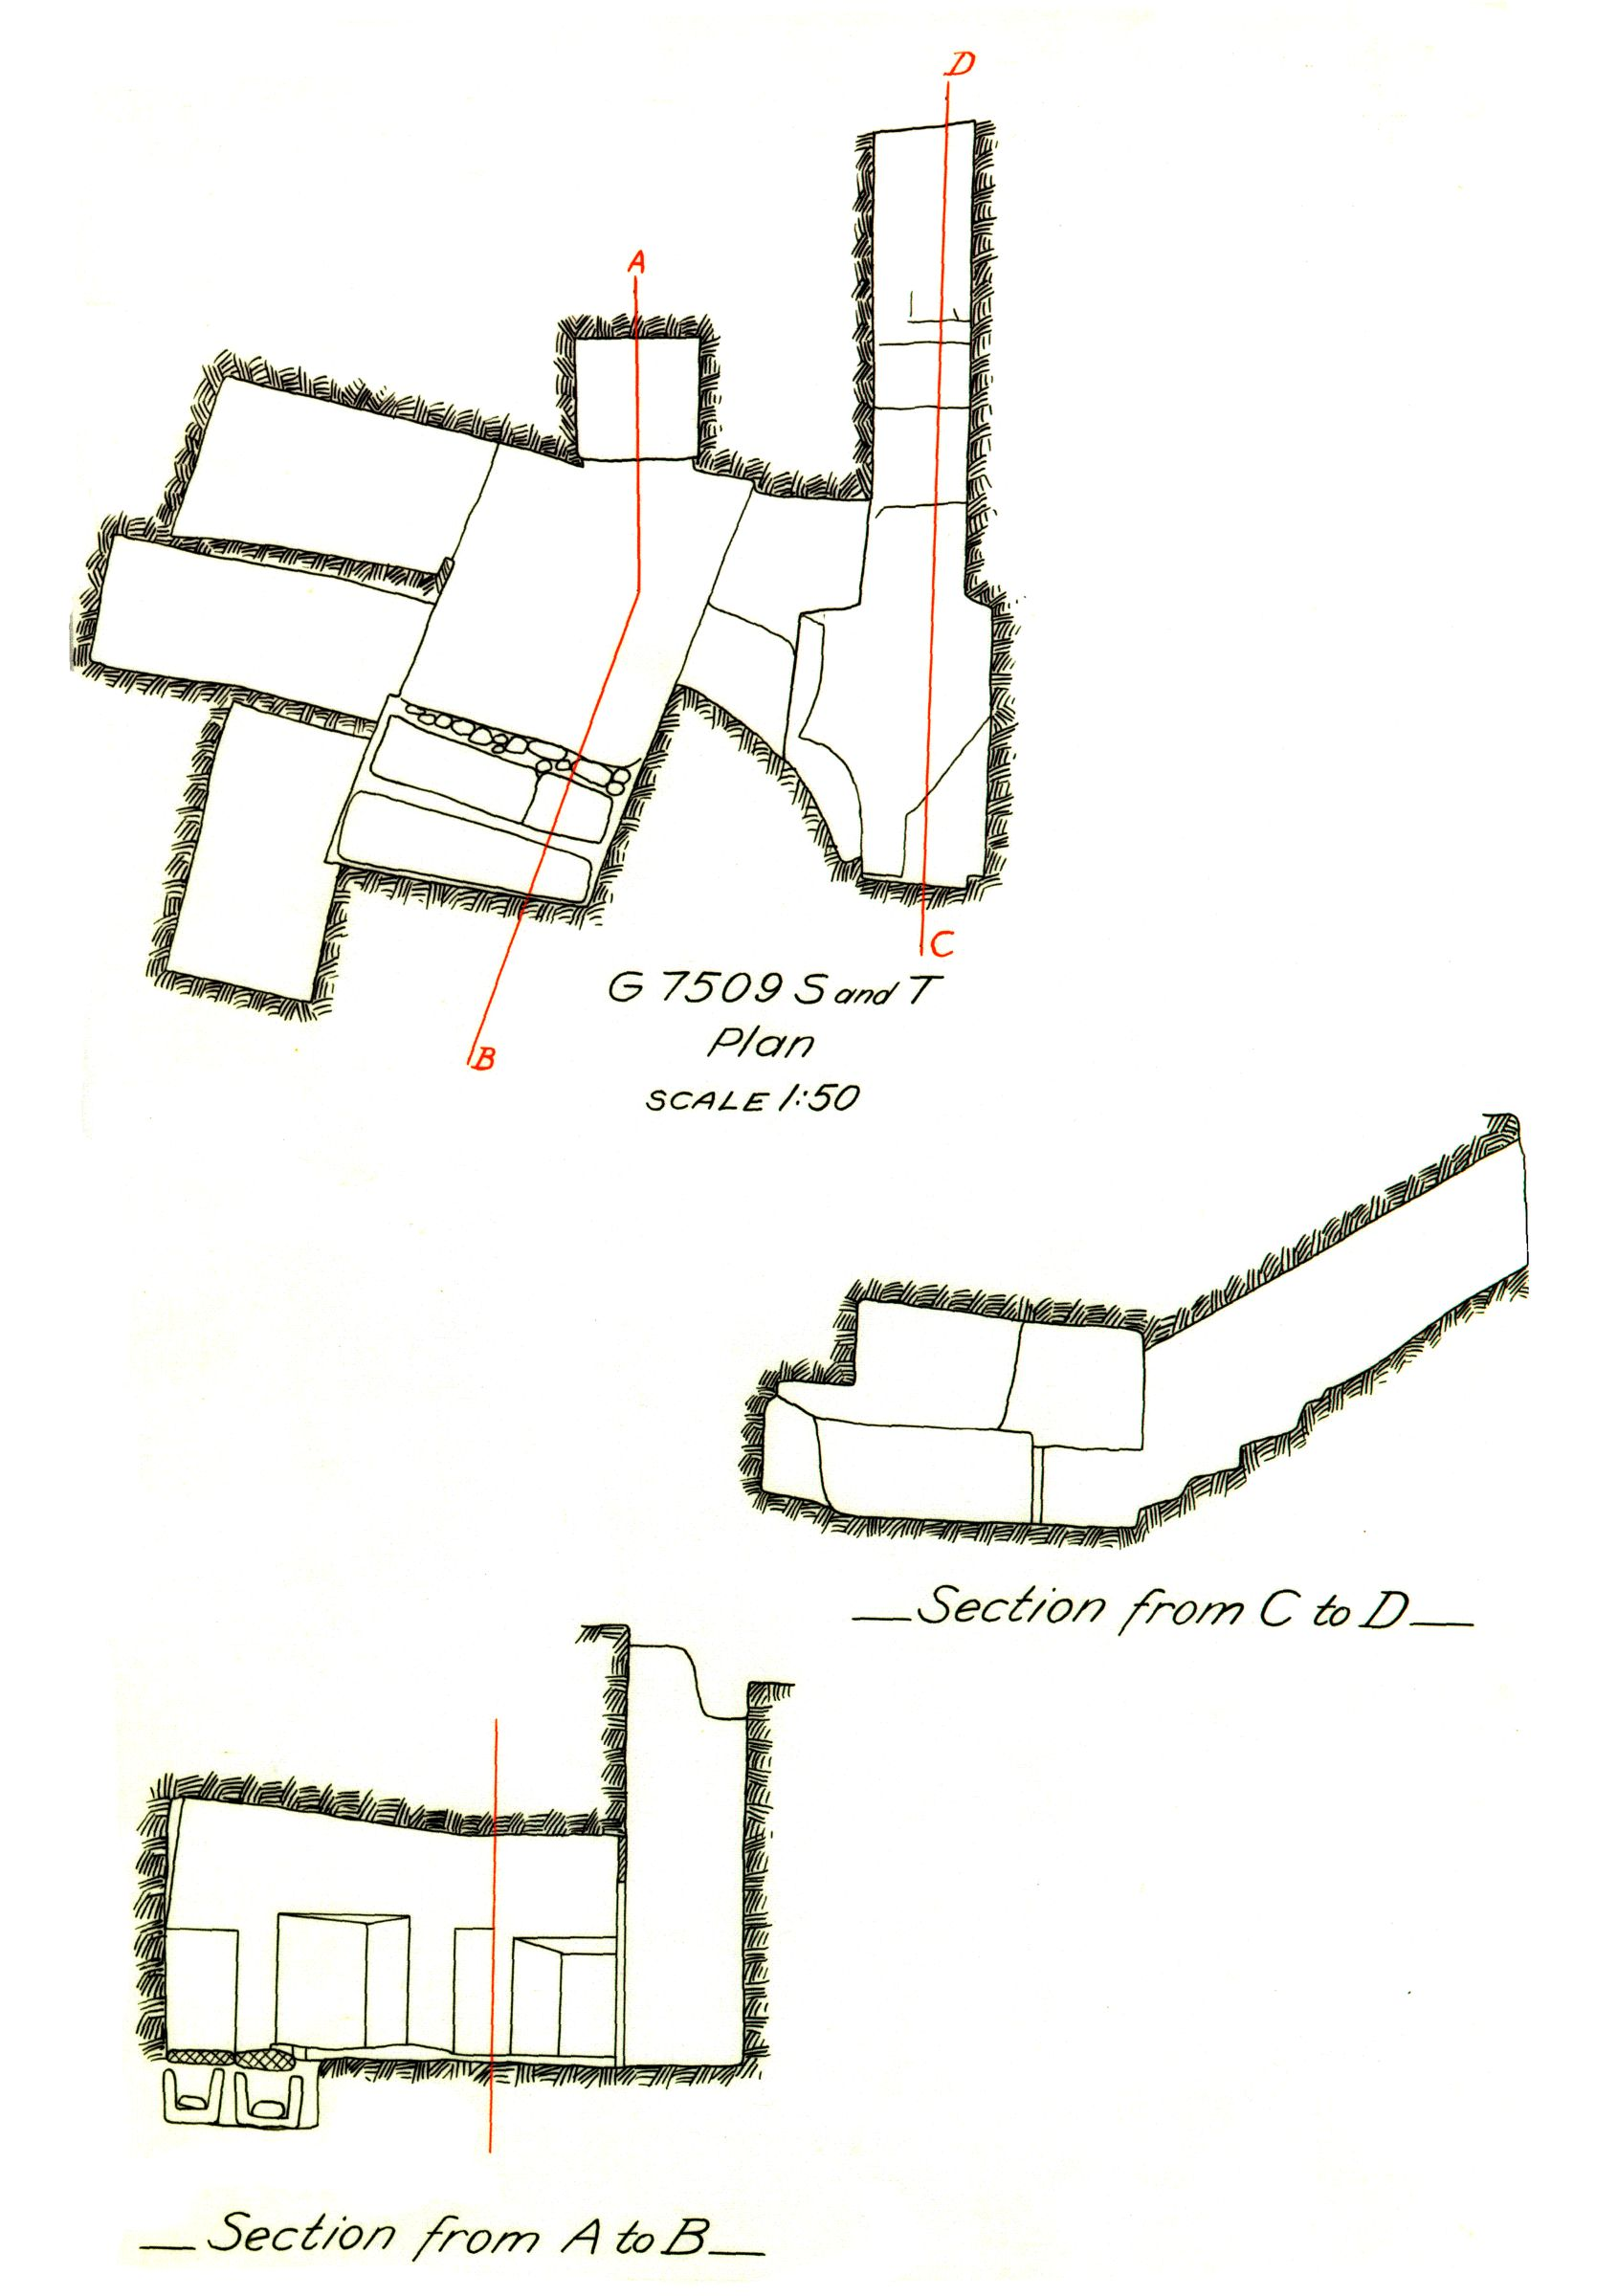 Maps and plans: G 7509, Shaft S and T